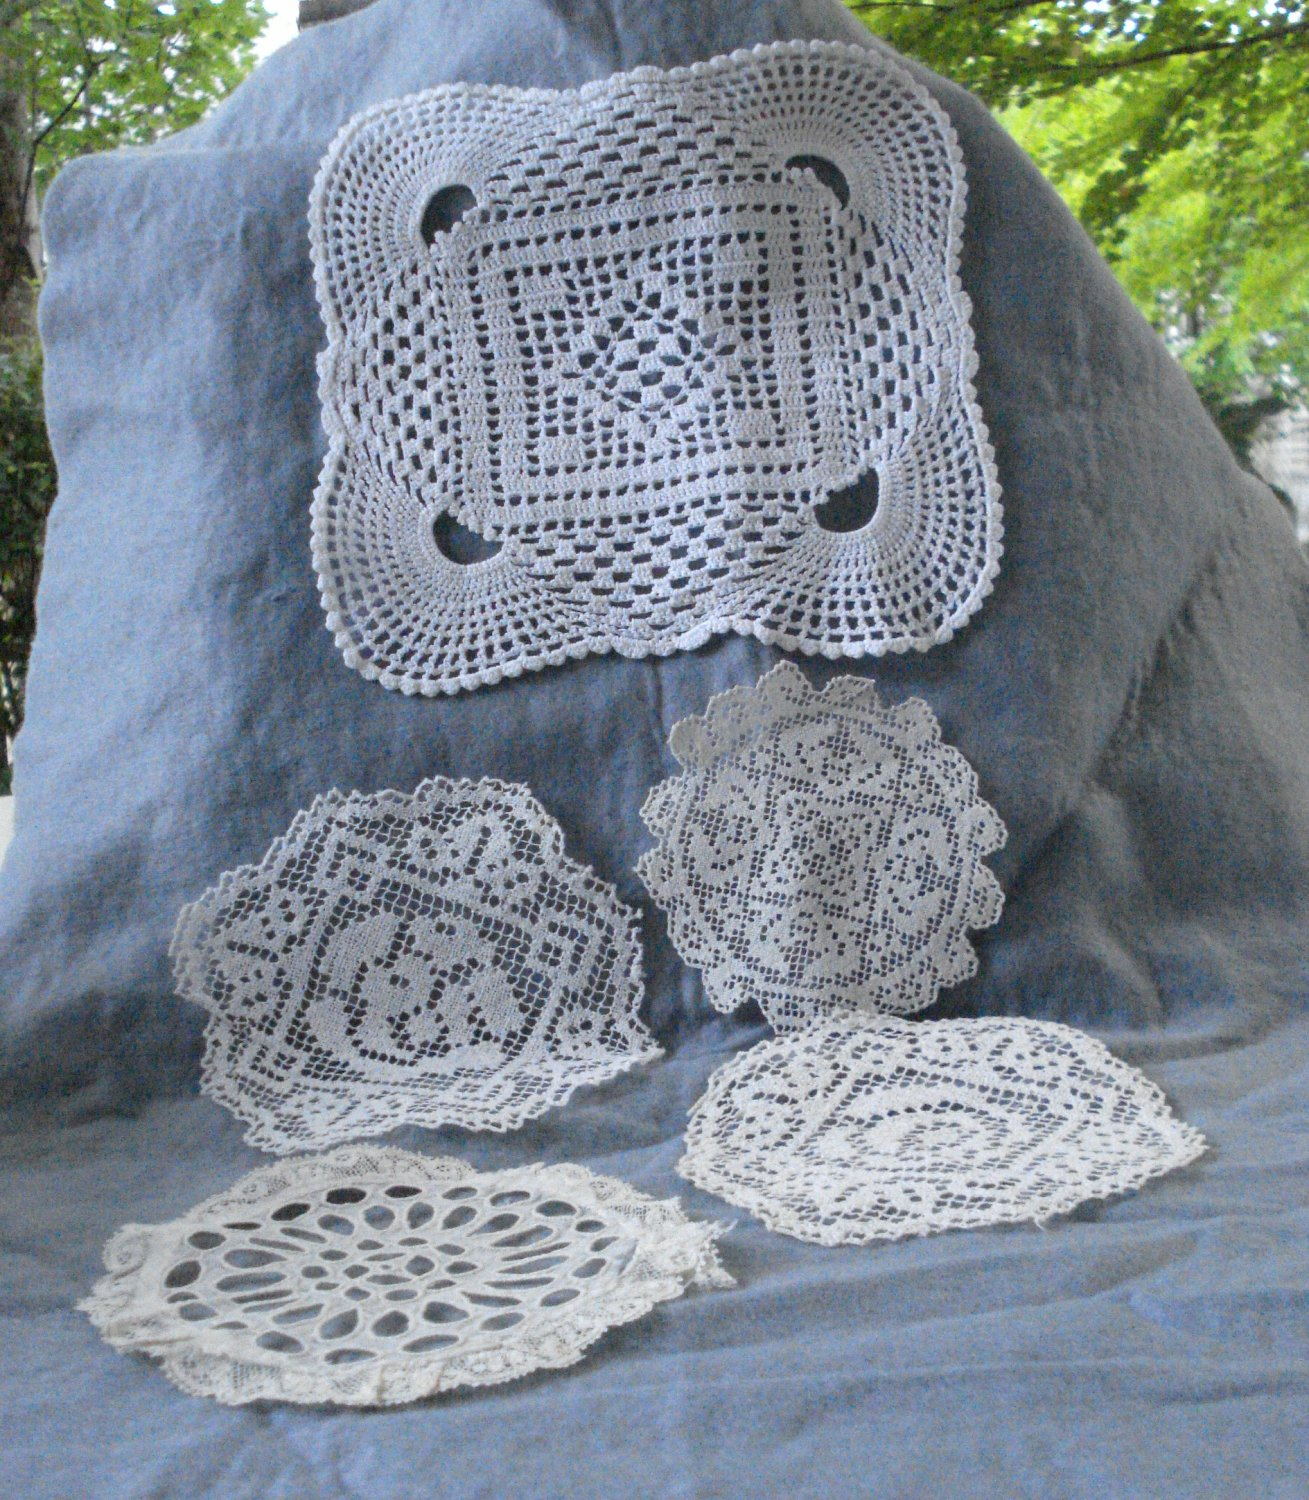 5 Mixed vintage doilies all perfect condition white ivory crafts or decor hc2993